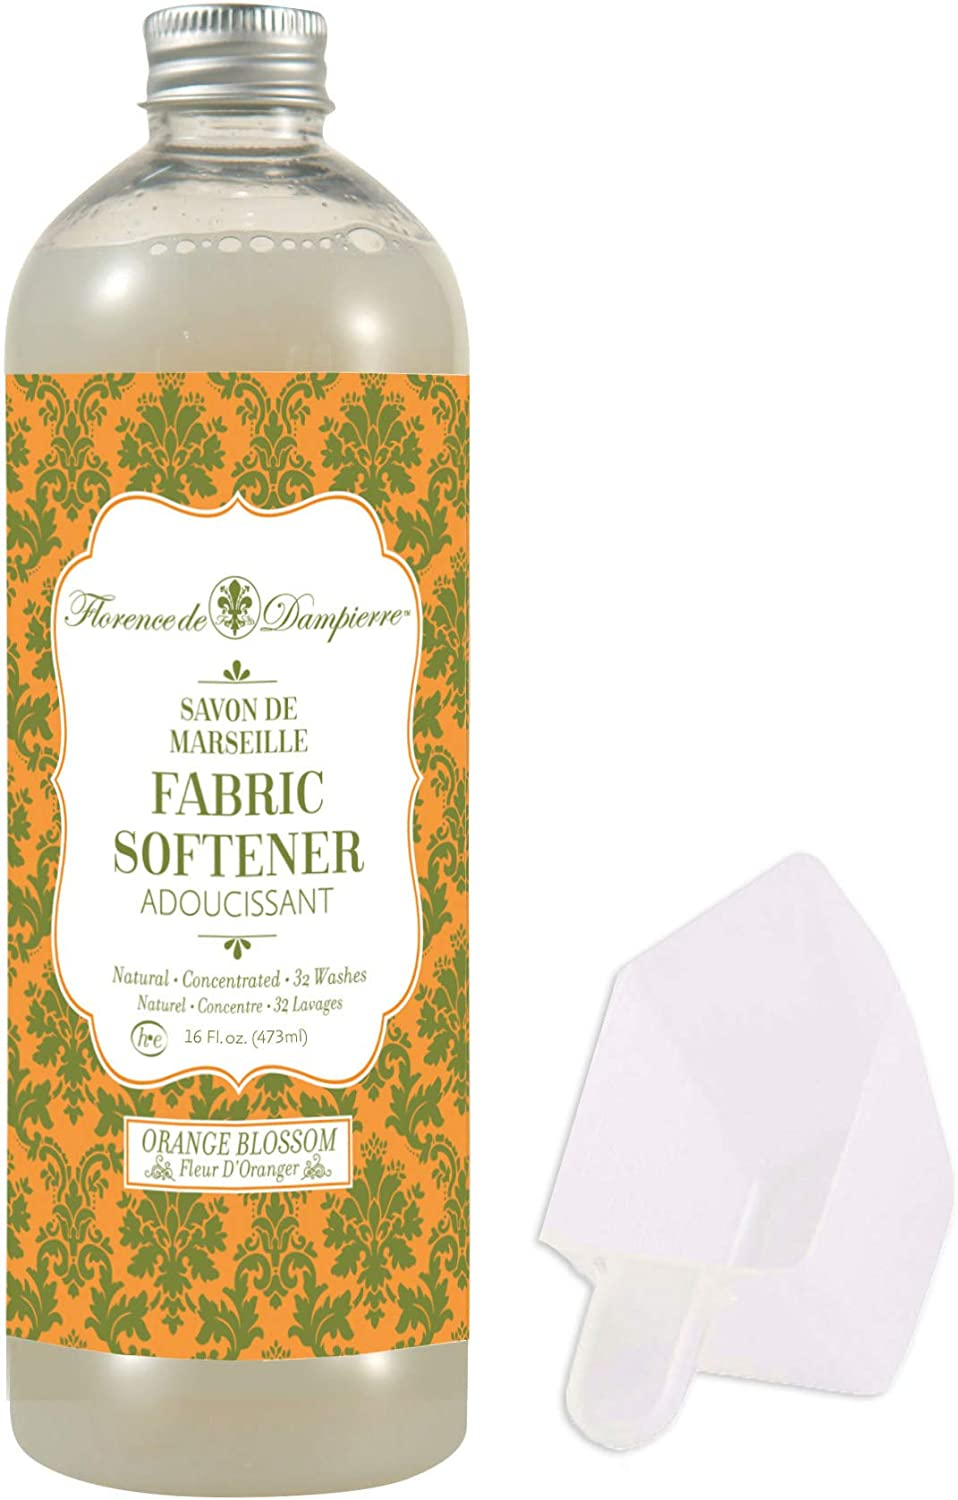 Florence de Dampierre Organic All-Natural Savon de Marseille Soap, Concentrated Liquid Fabric Softener, 16 oz. - Orange Blossom